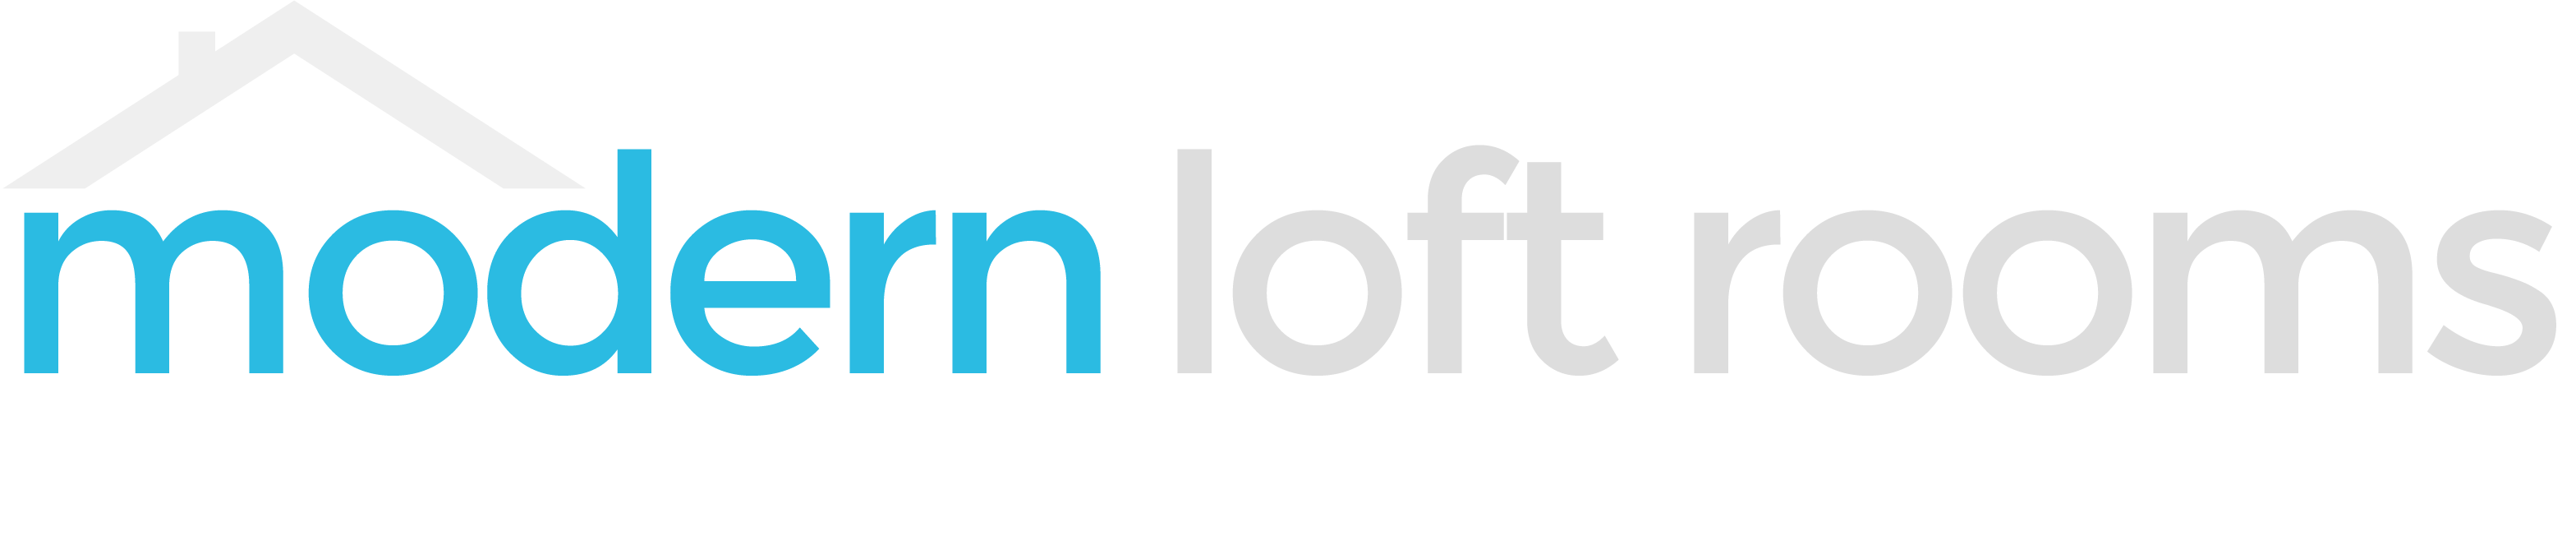 Modern Loft Rooms Logo